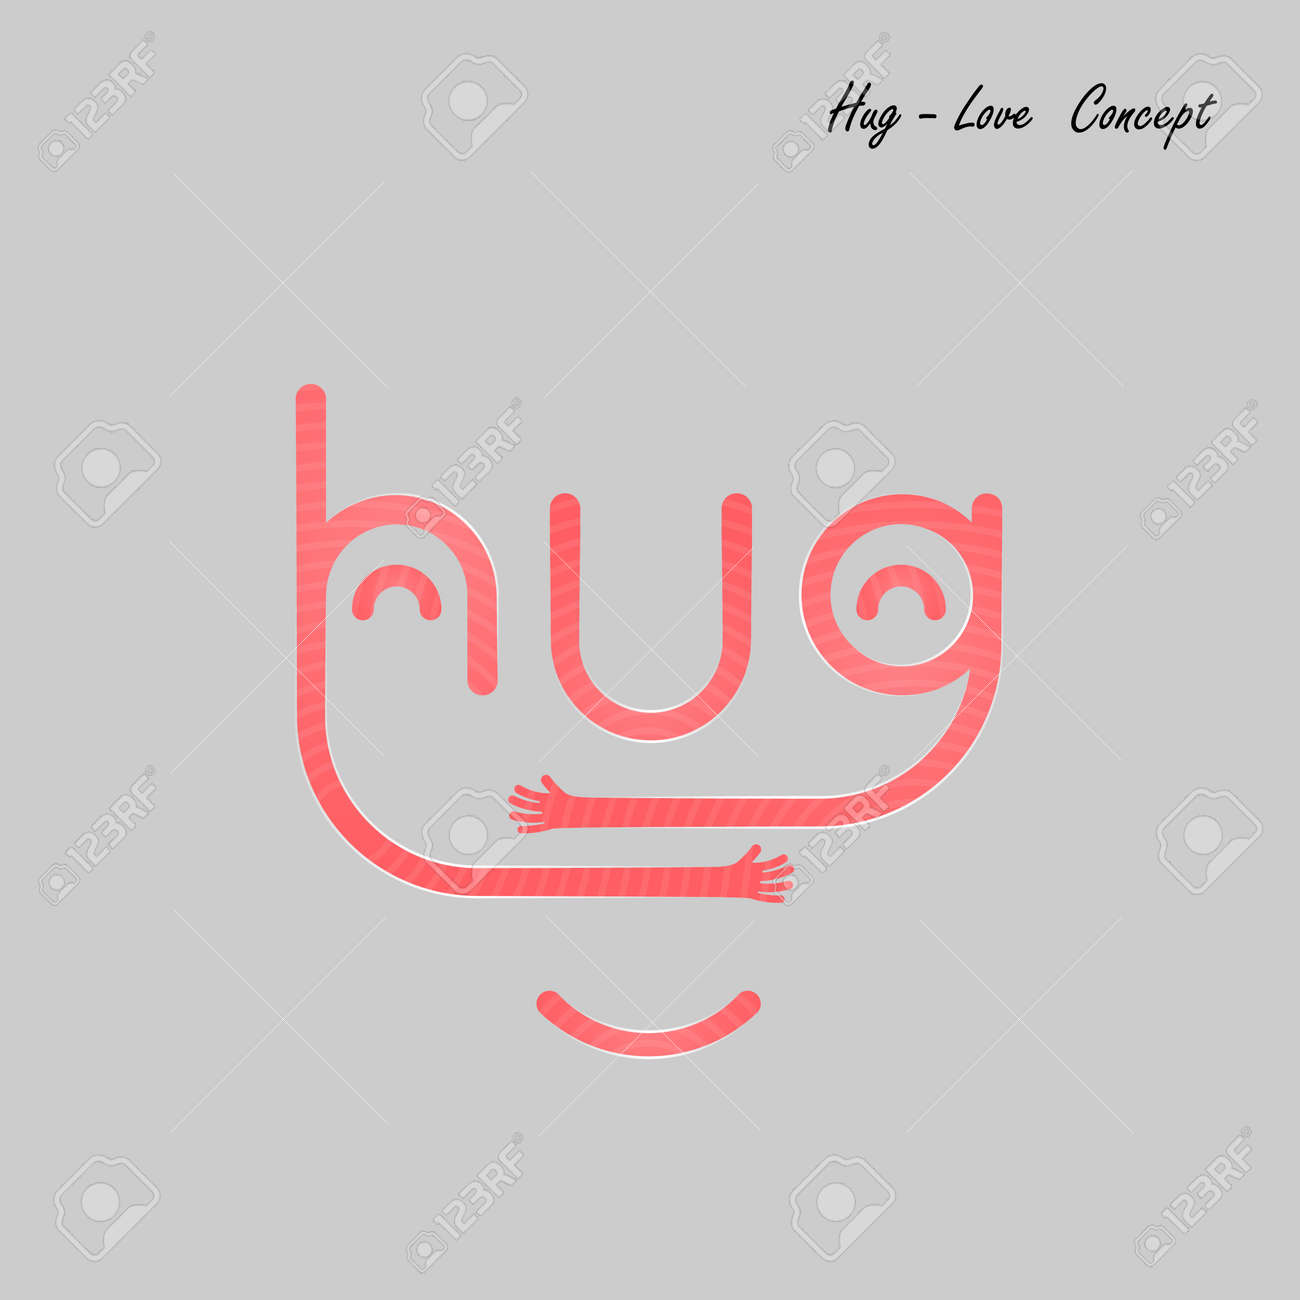 Hug Typographical And Hand Iconembrace Or Hug Icons Vector